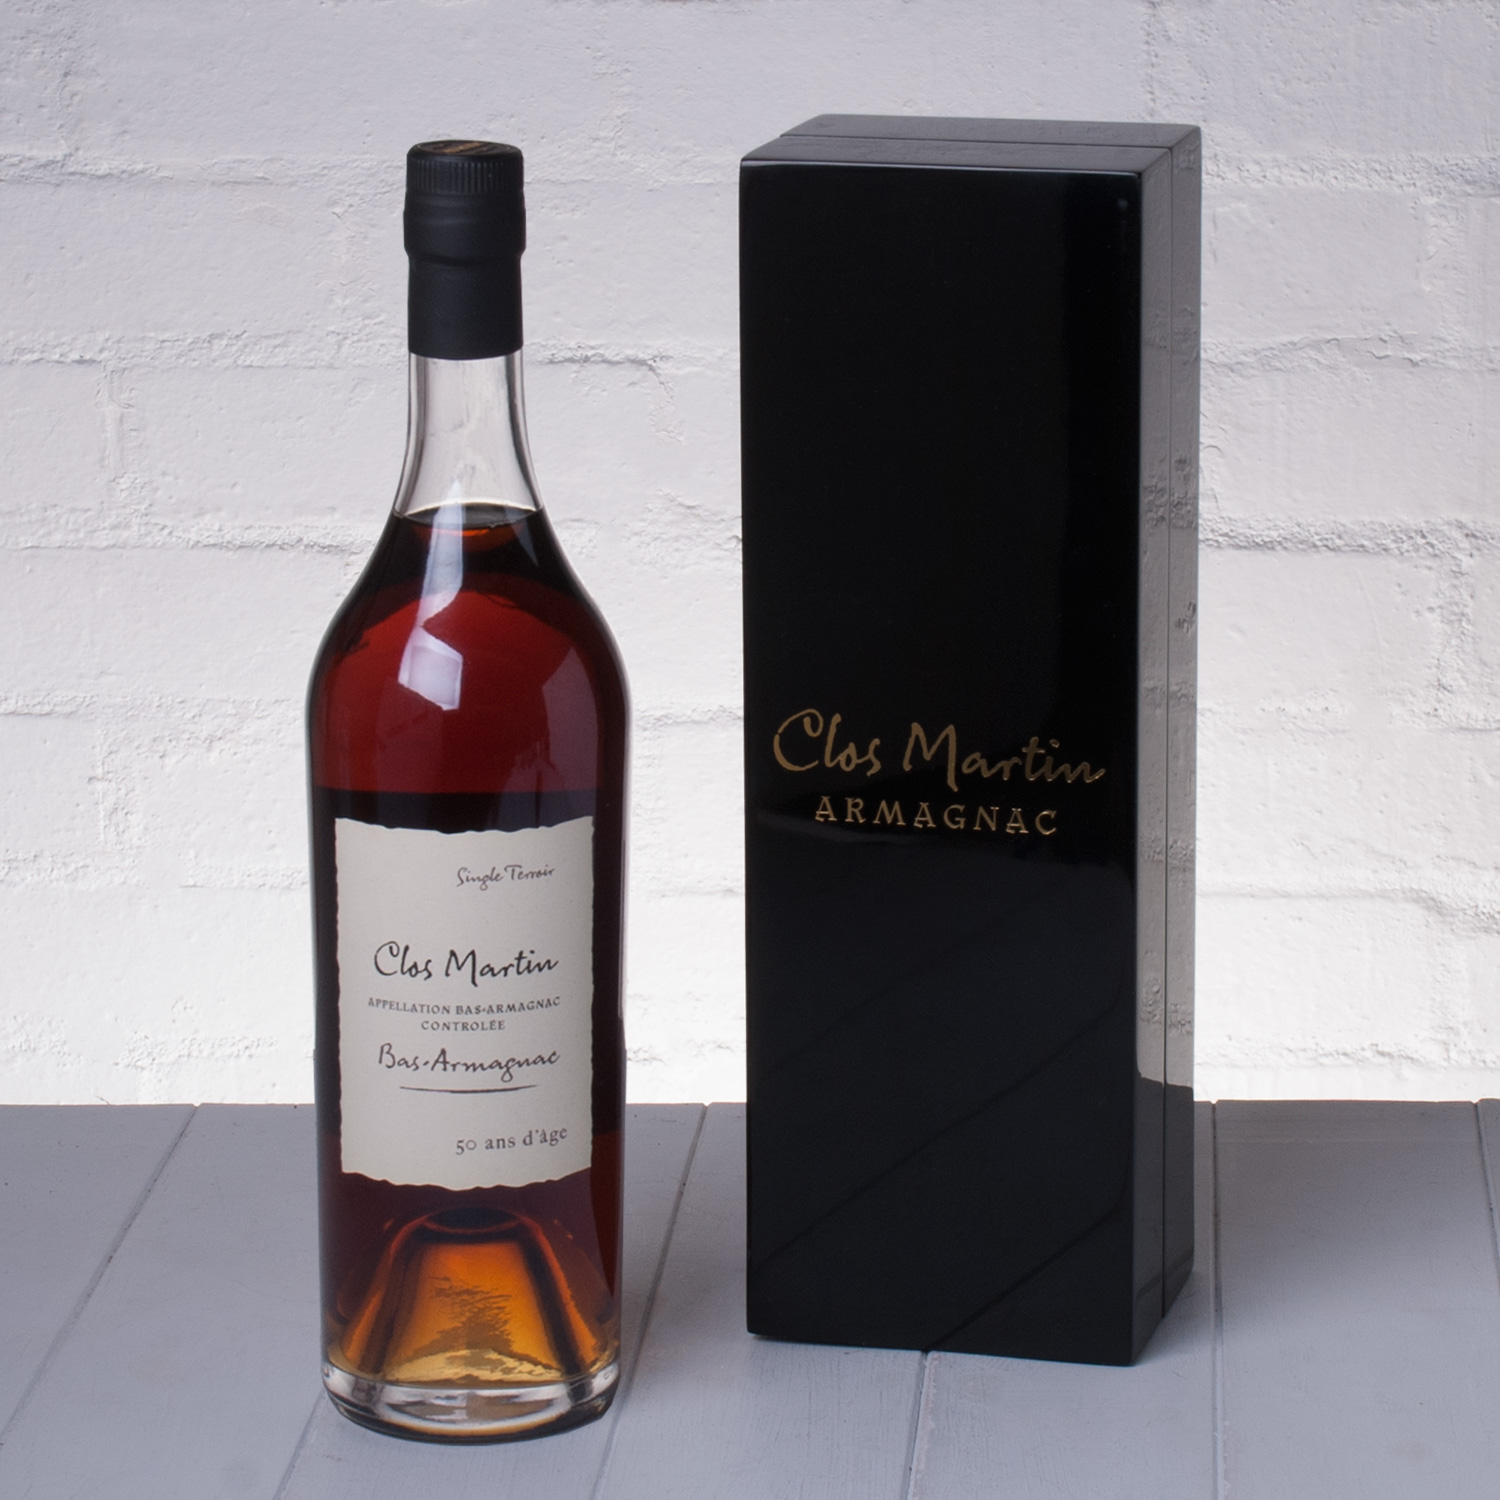 Clos Martin 50 Year Old Armagnac Brandy in Laquered Presentation Gift Box